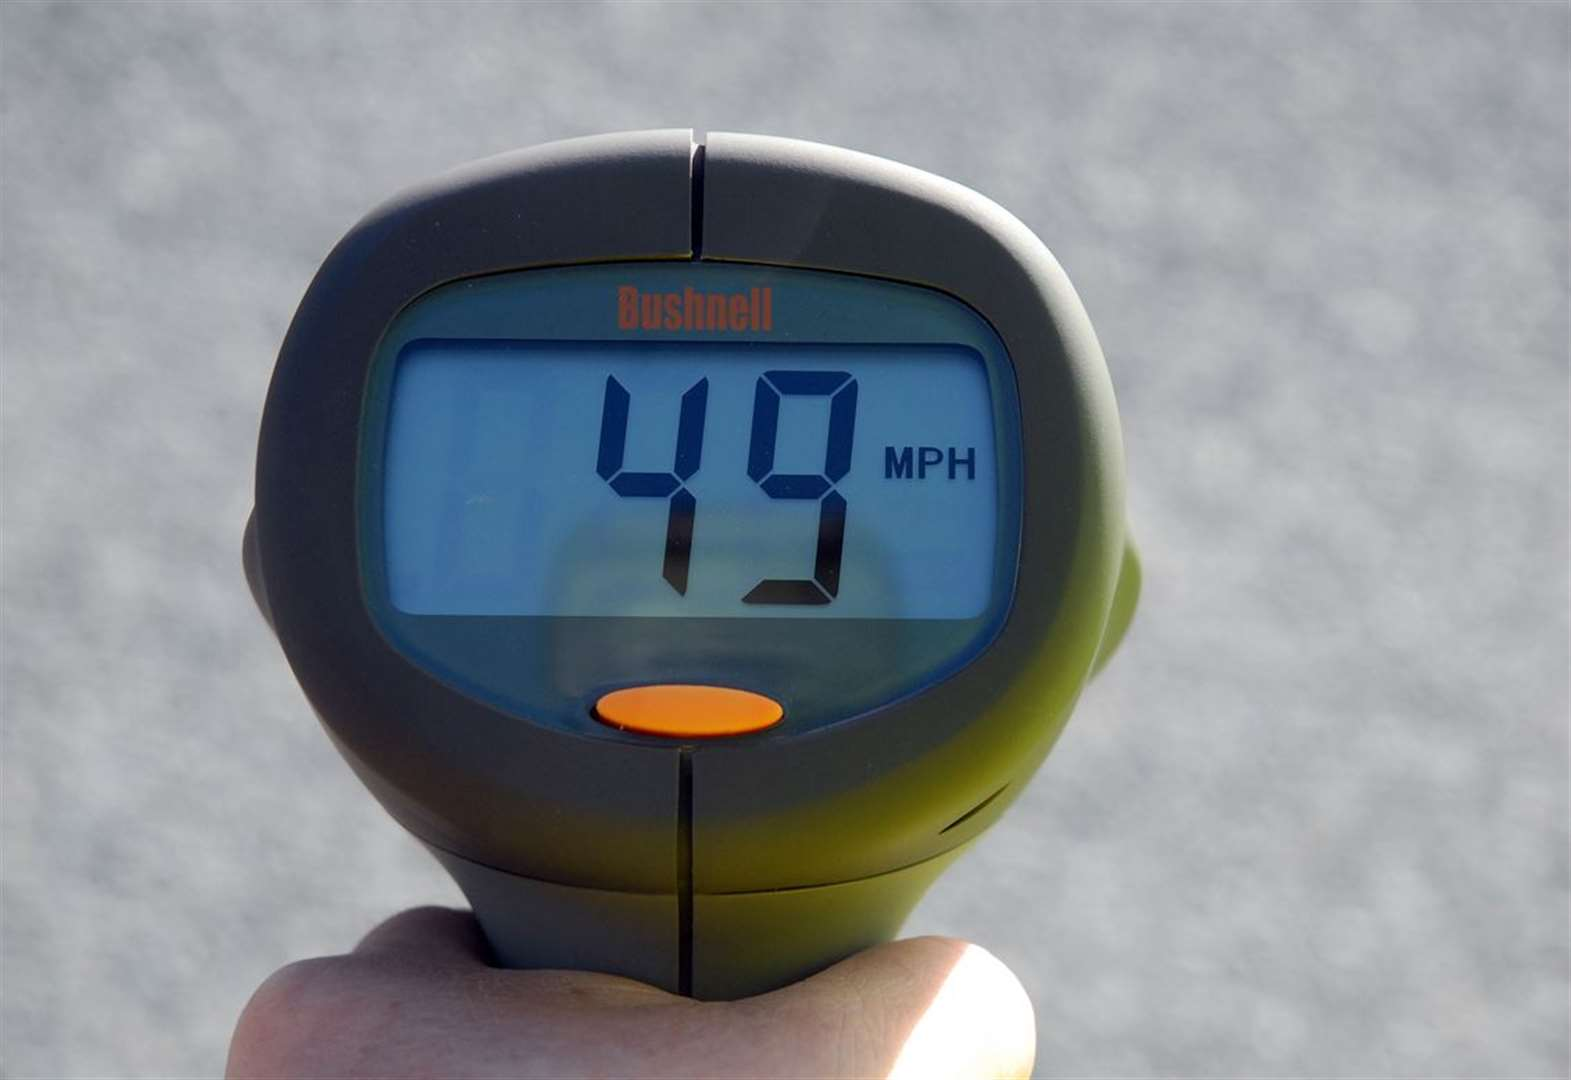 Crackdown on speeding drivers